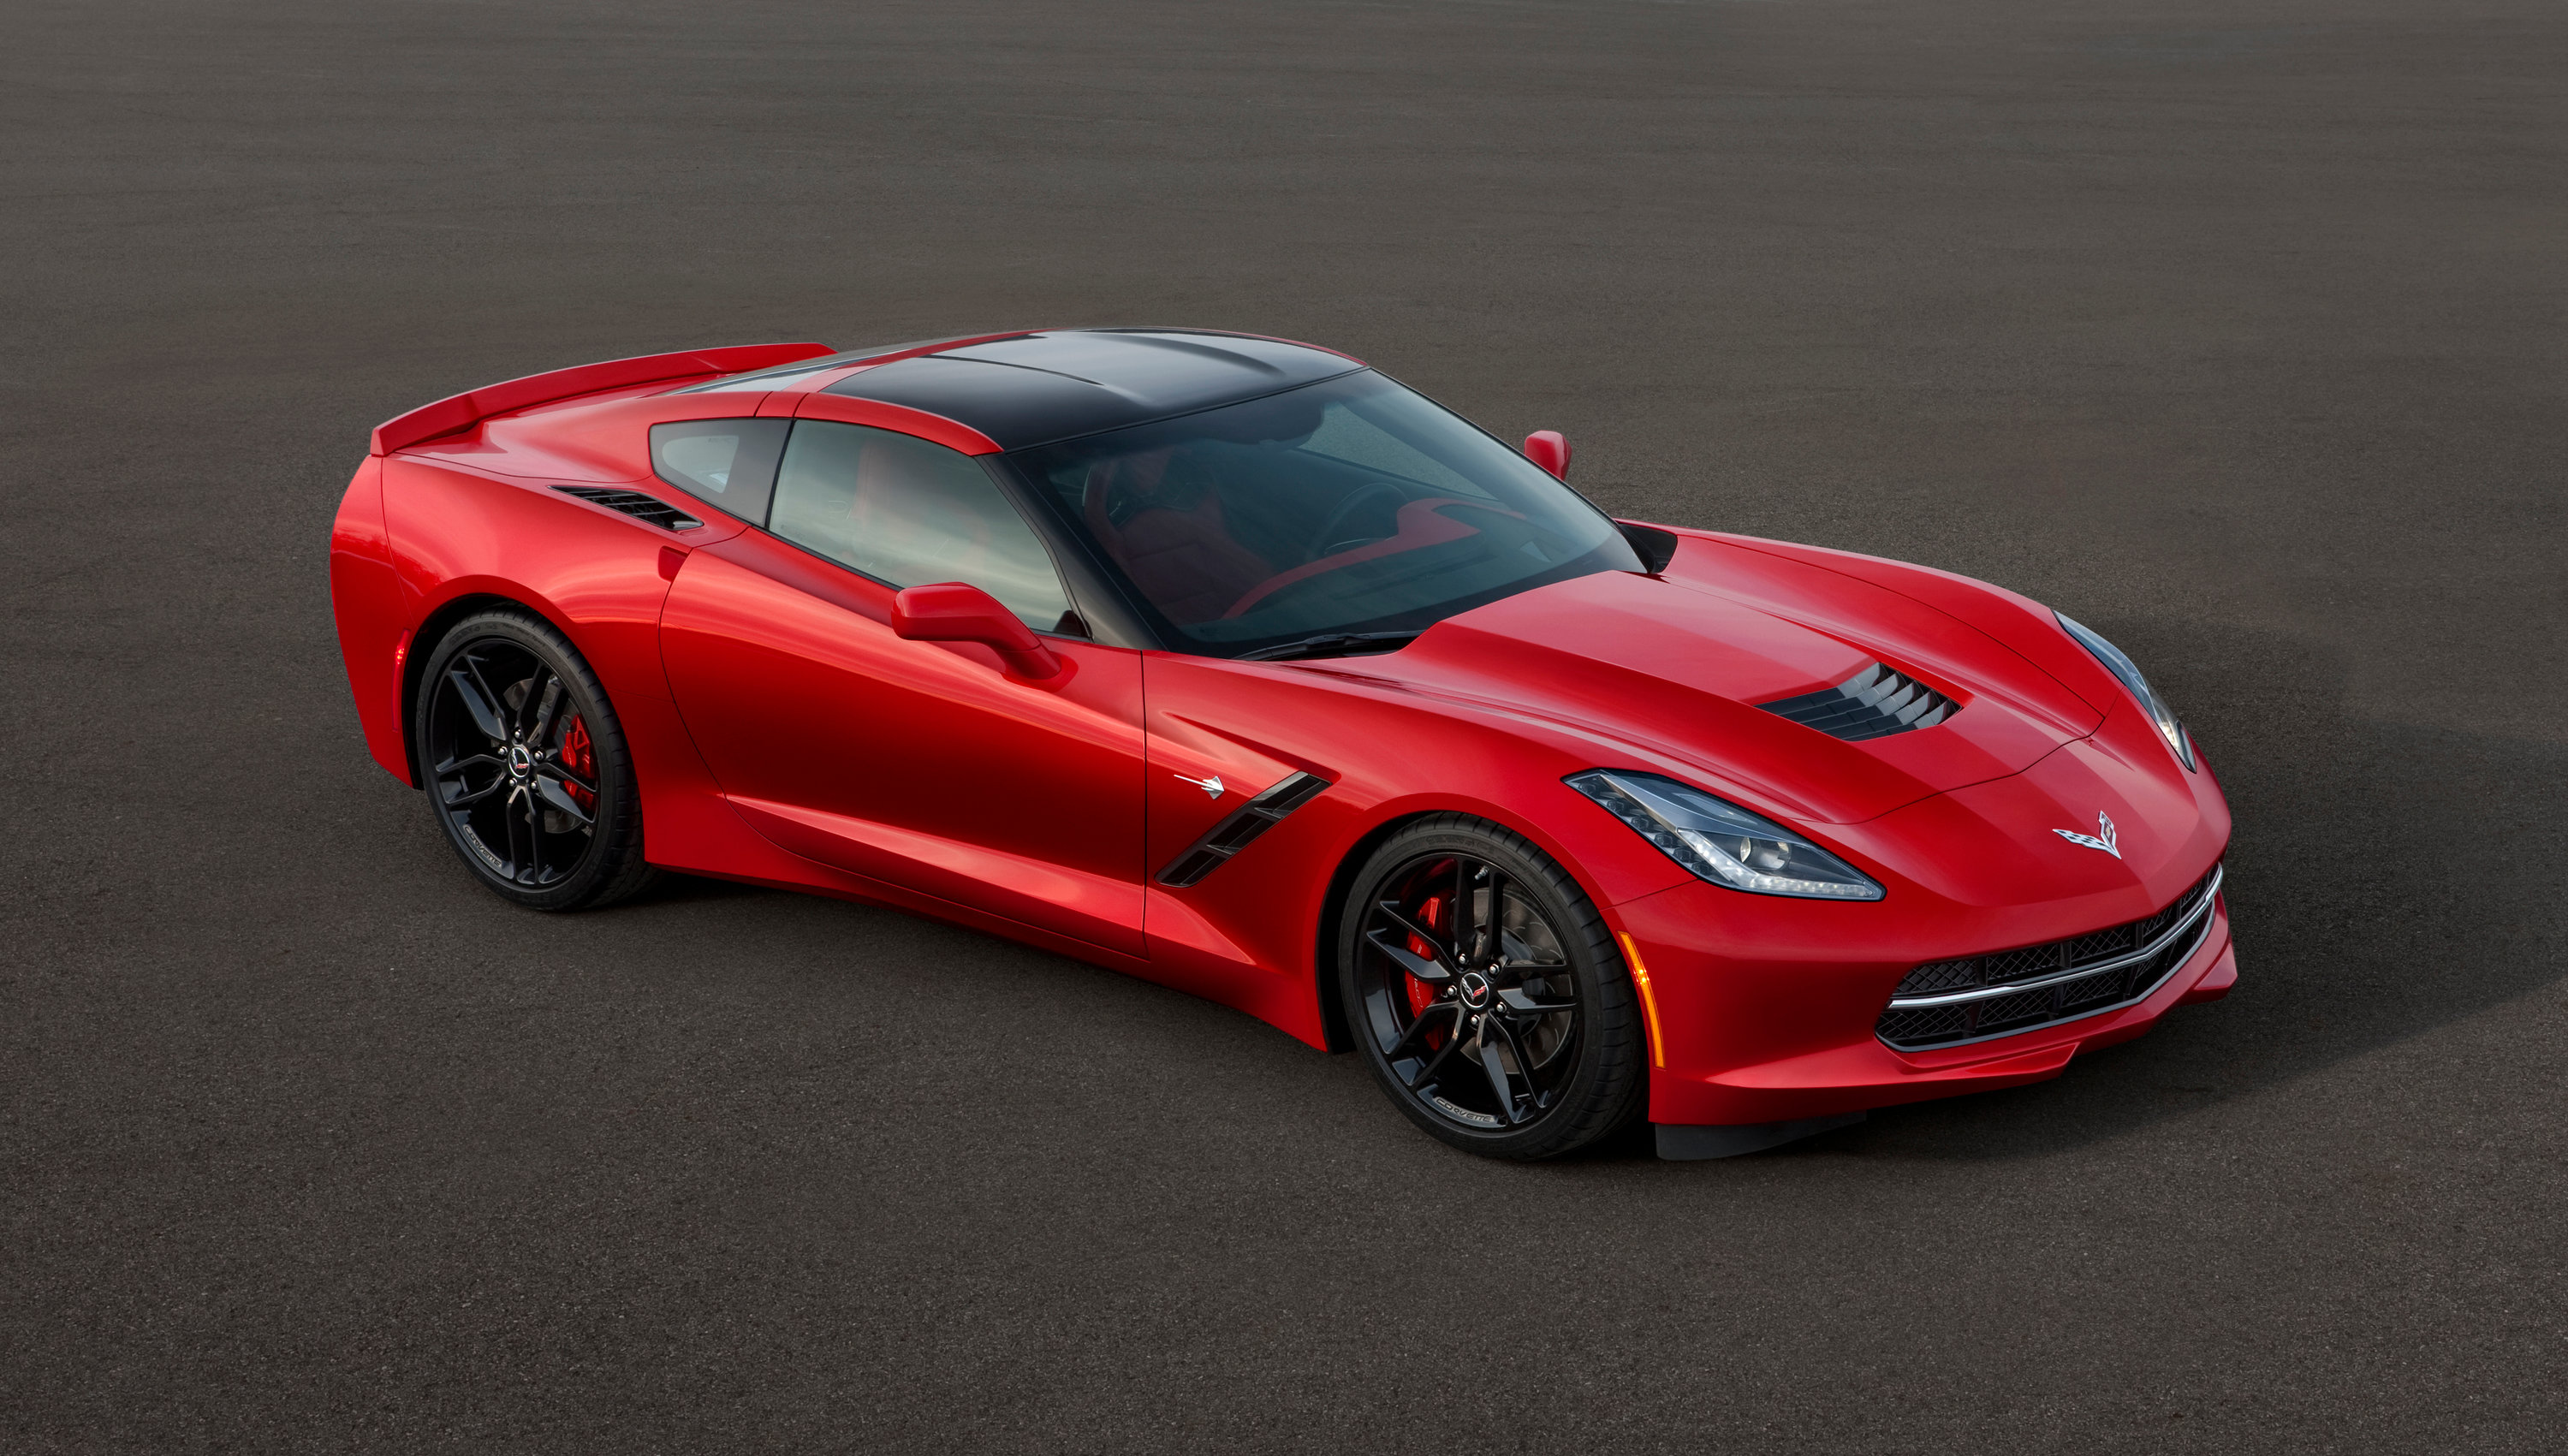 Chevrolet Corvette Stingray #21